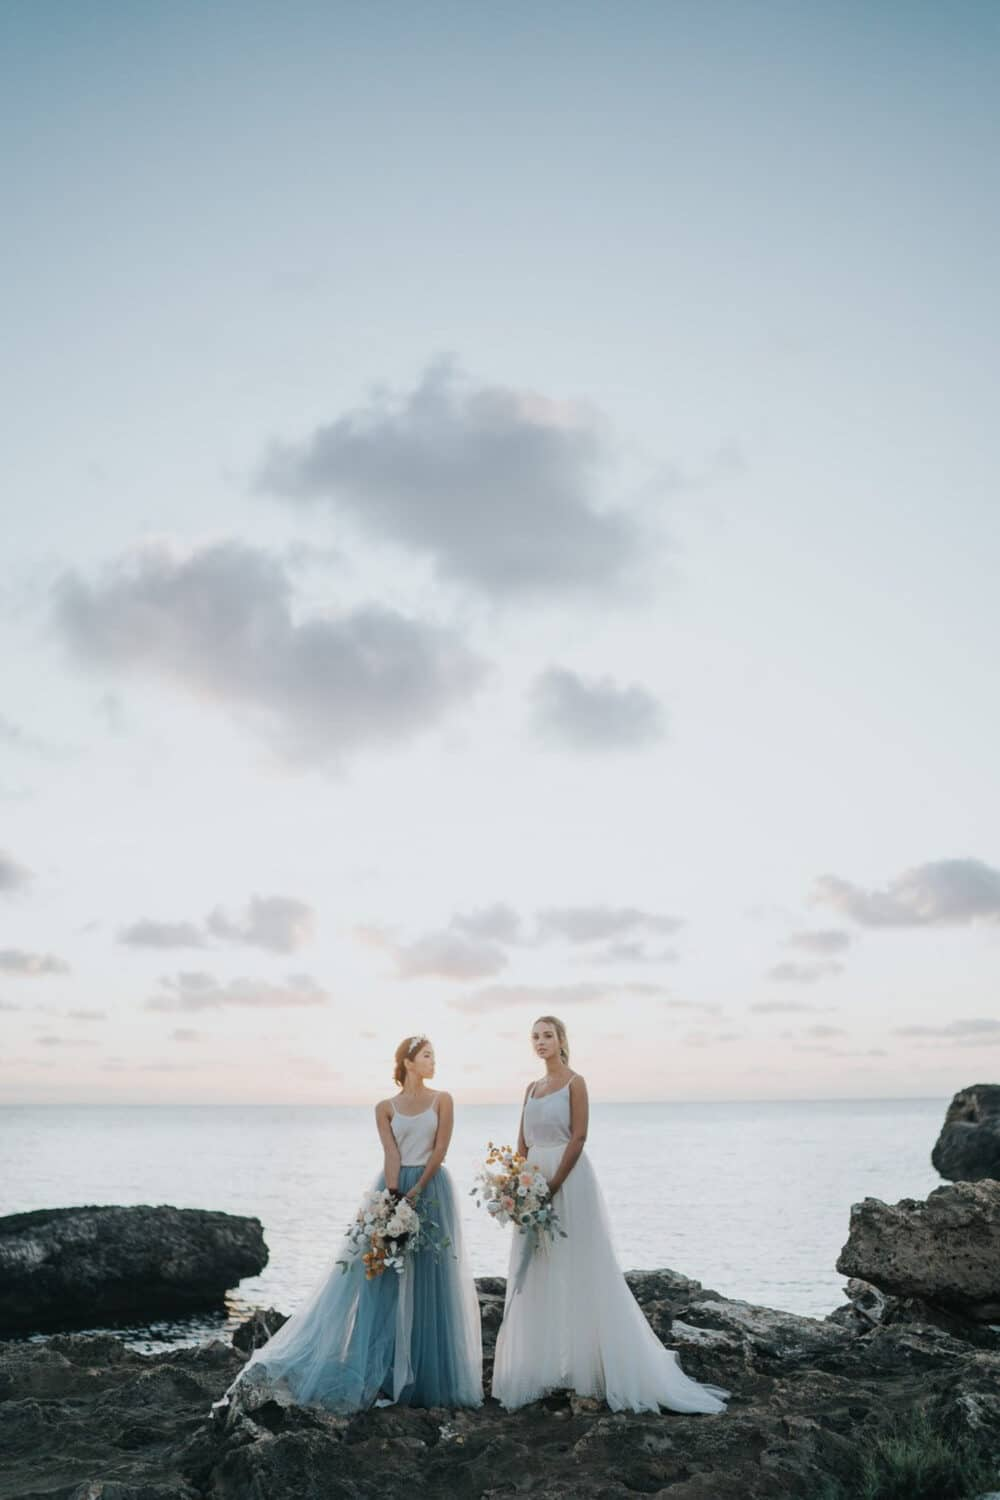 two brides on Mallorca coast